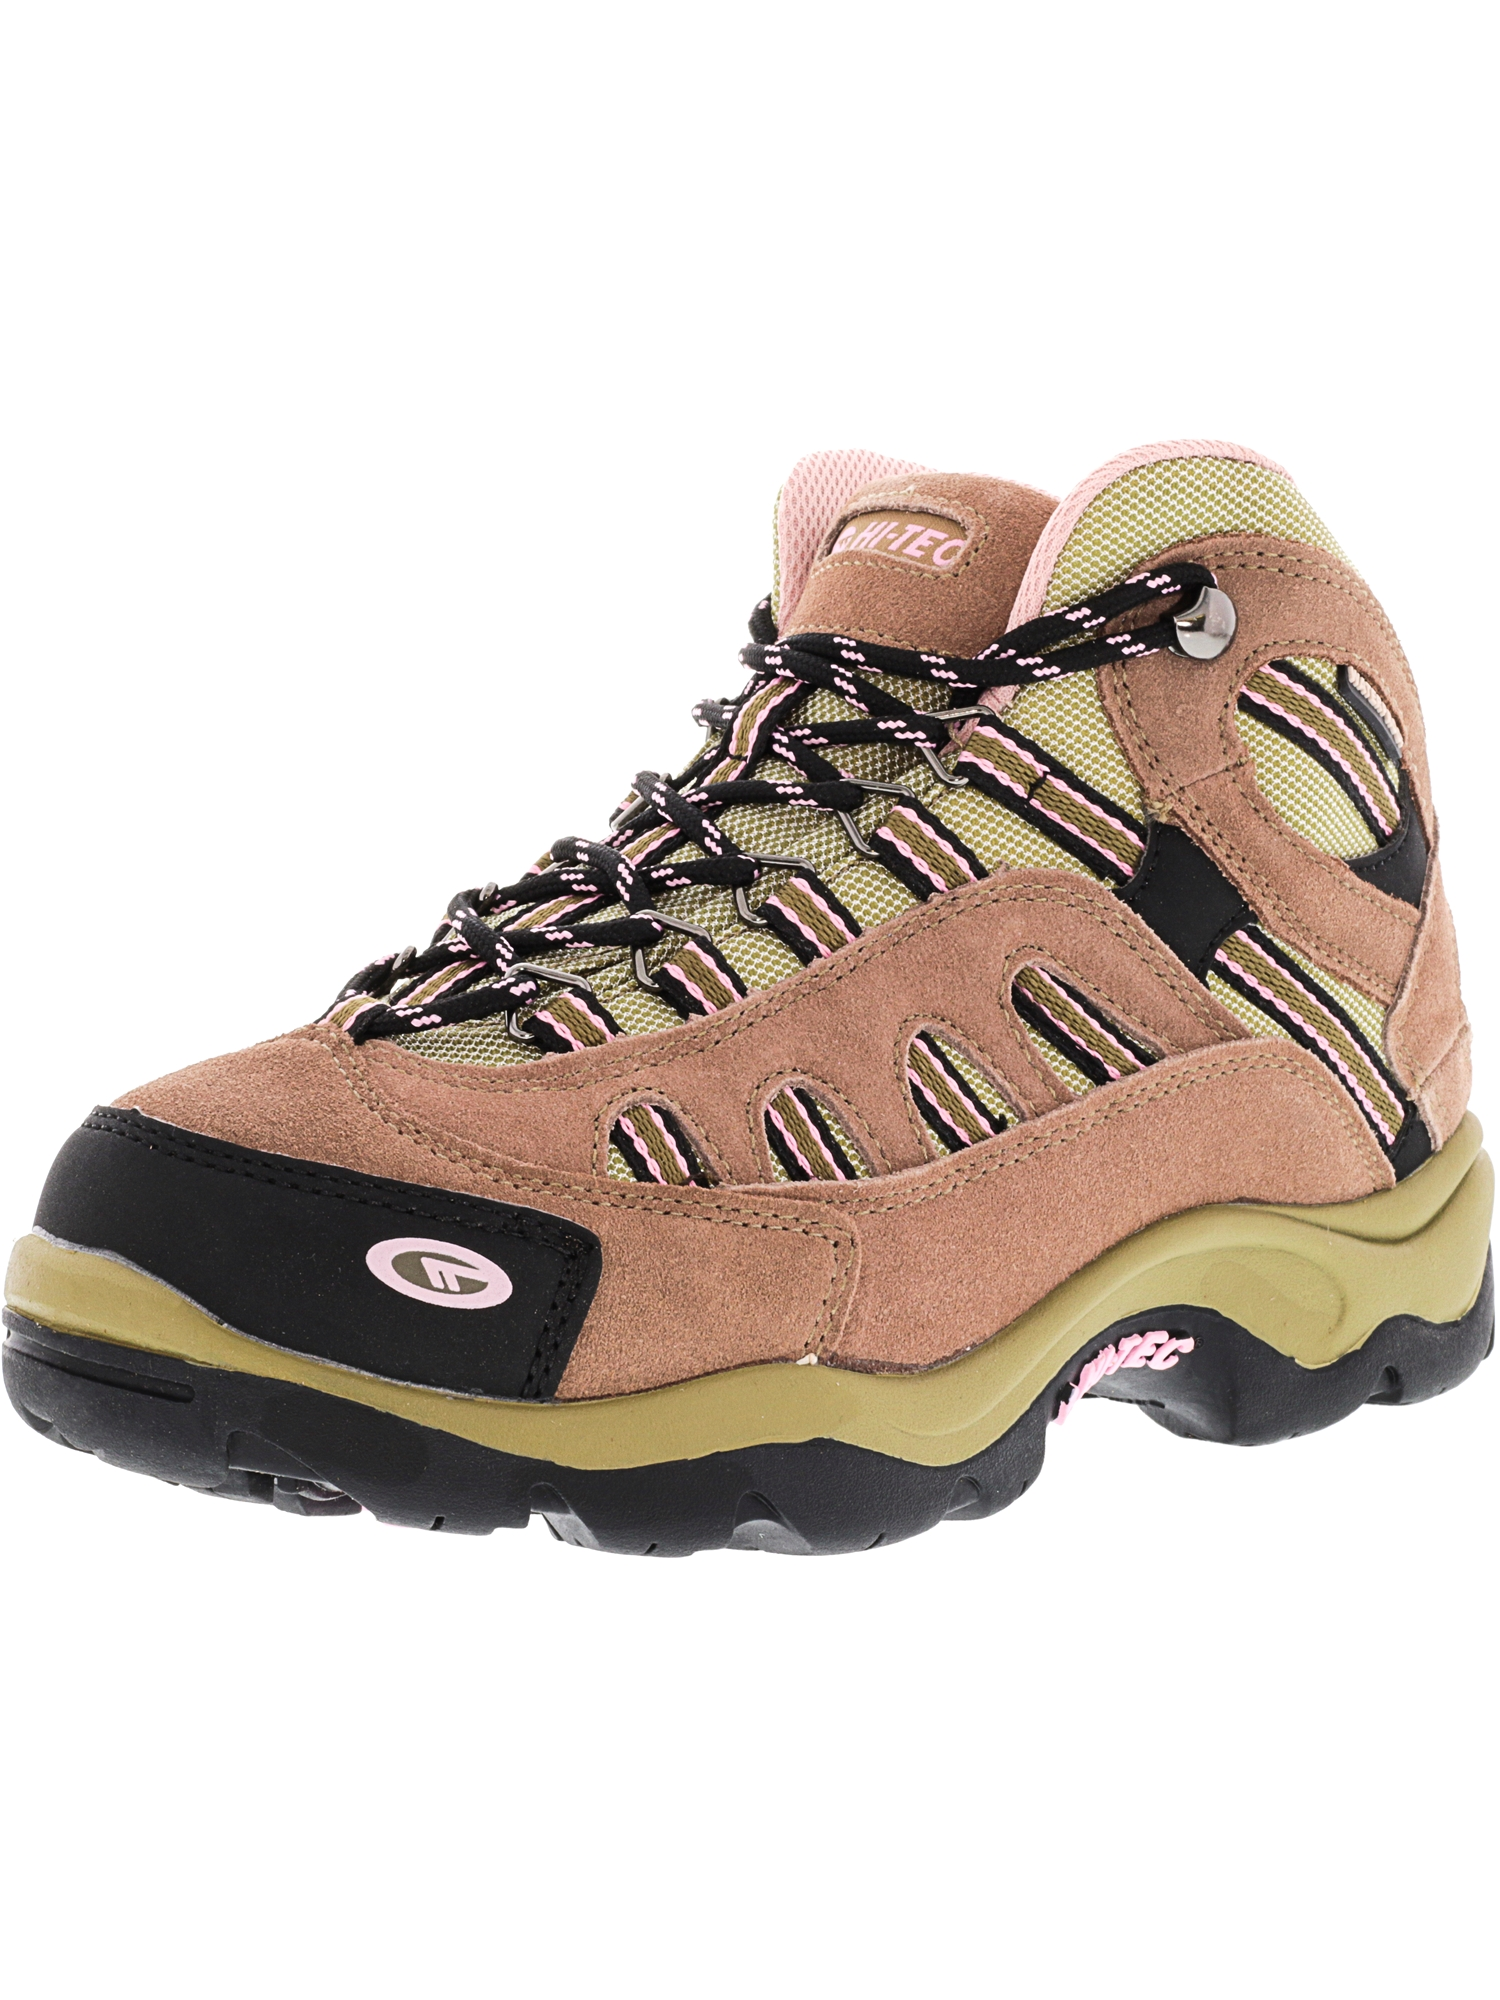 Hi-Tec Women's Bandera Mid Waterproof Taupe   Blush Mid-Top Suede Hiking Boot 6M by Hi-Tec